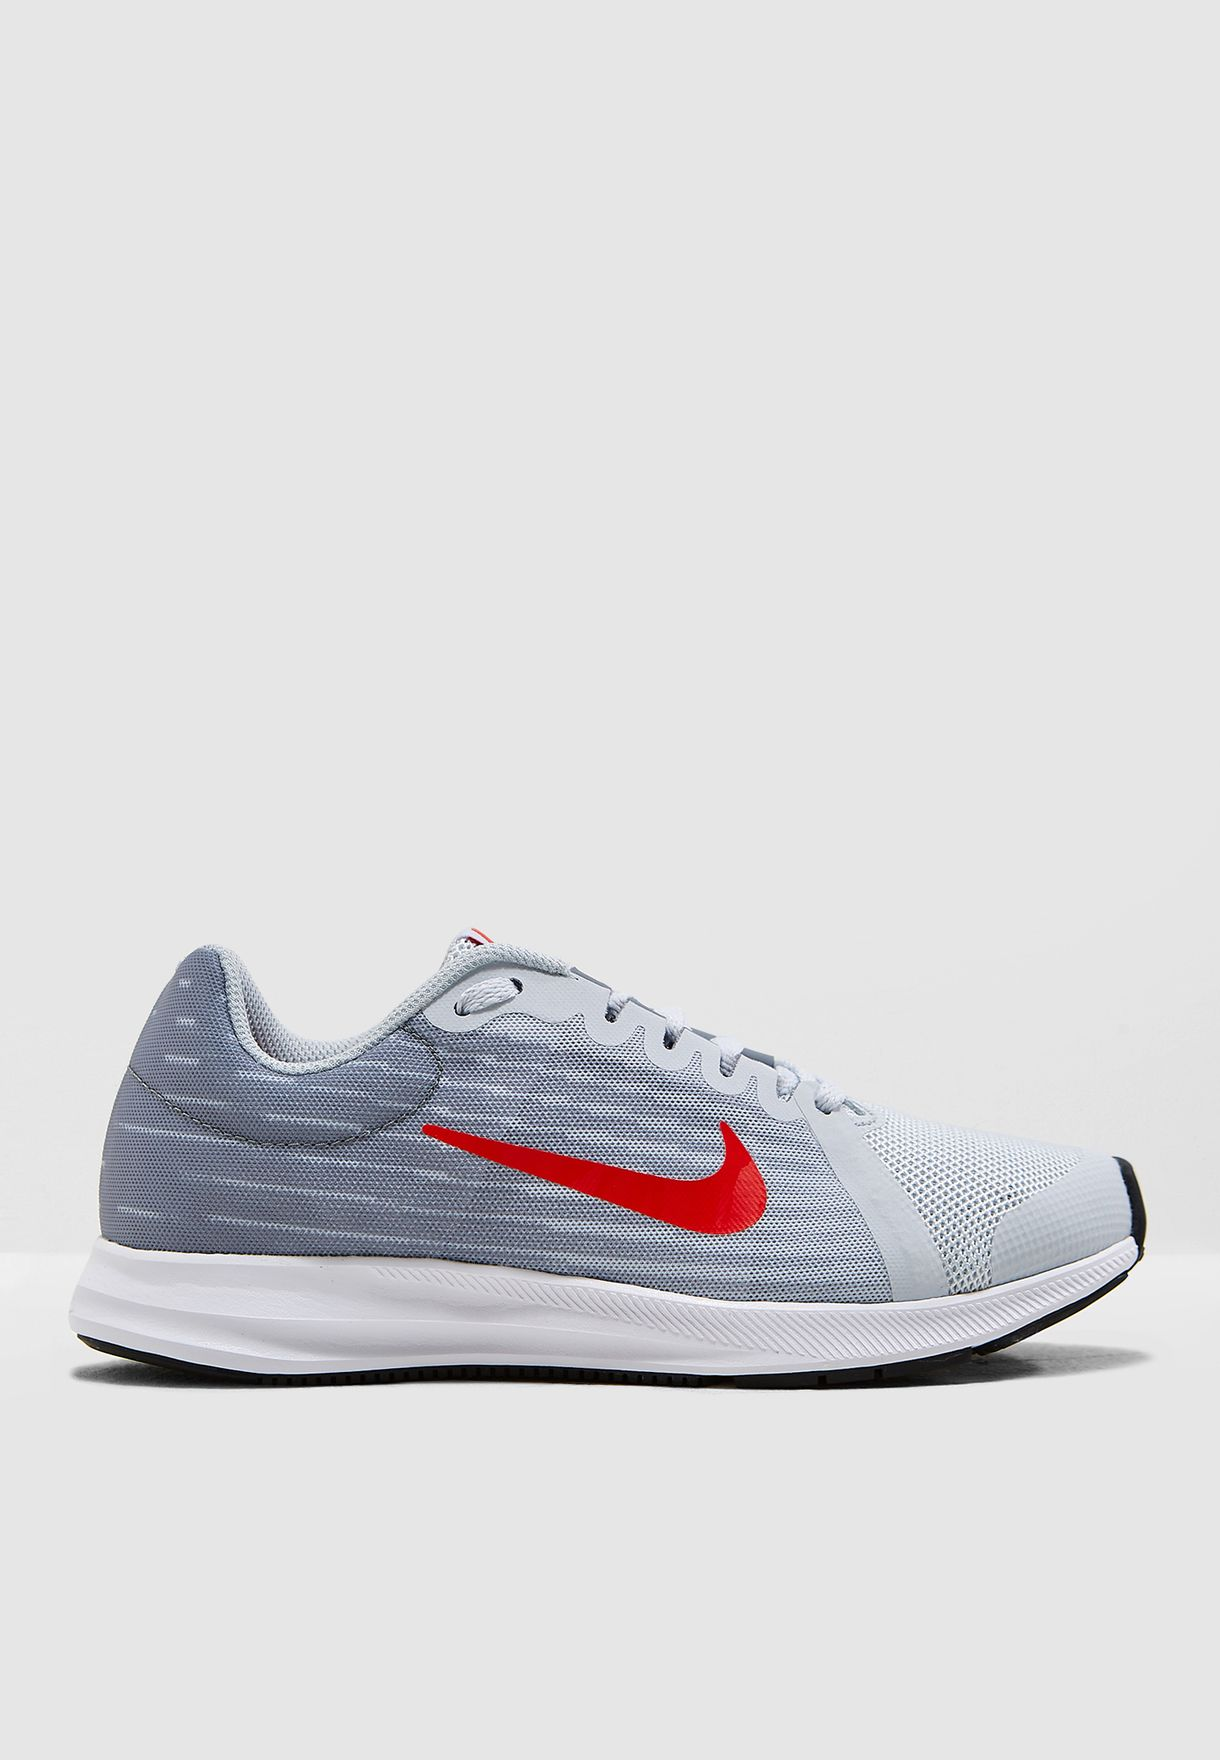 425cc2a69ebbf Shop Nike grey Youth Downshifter 8 922853-010 for Kids in Qatar ...